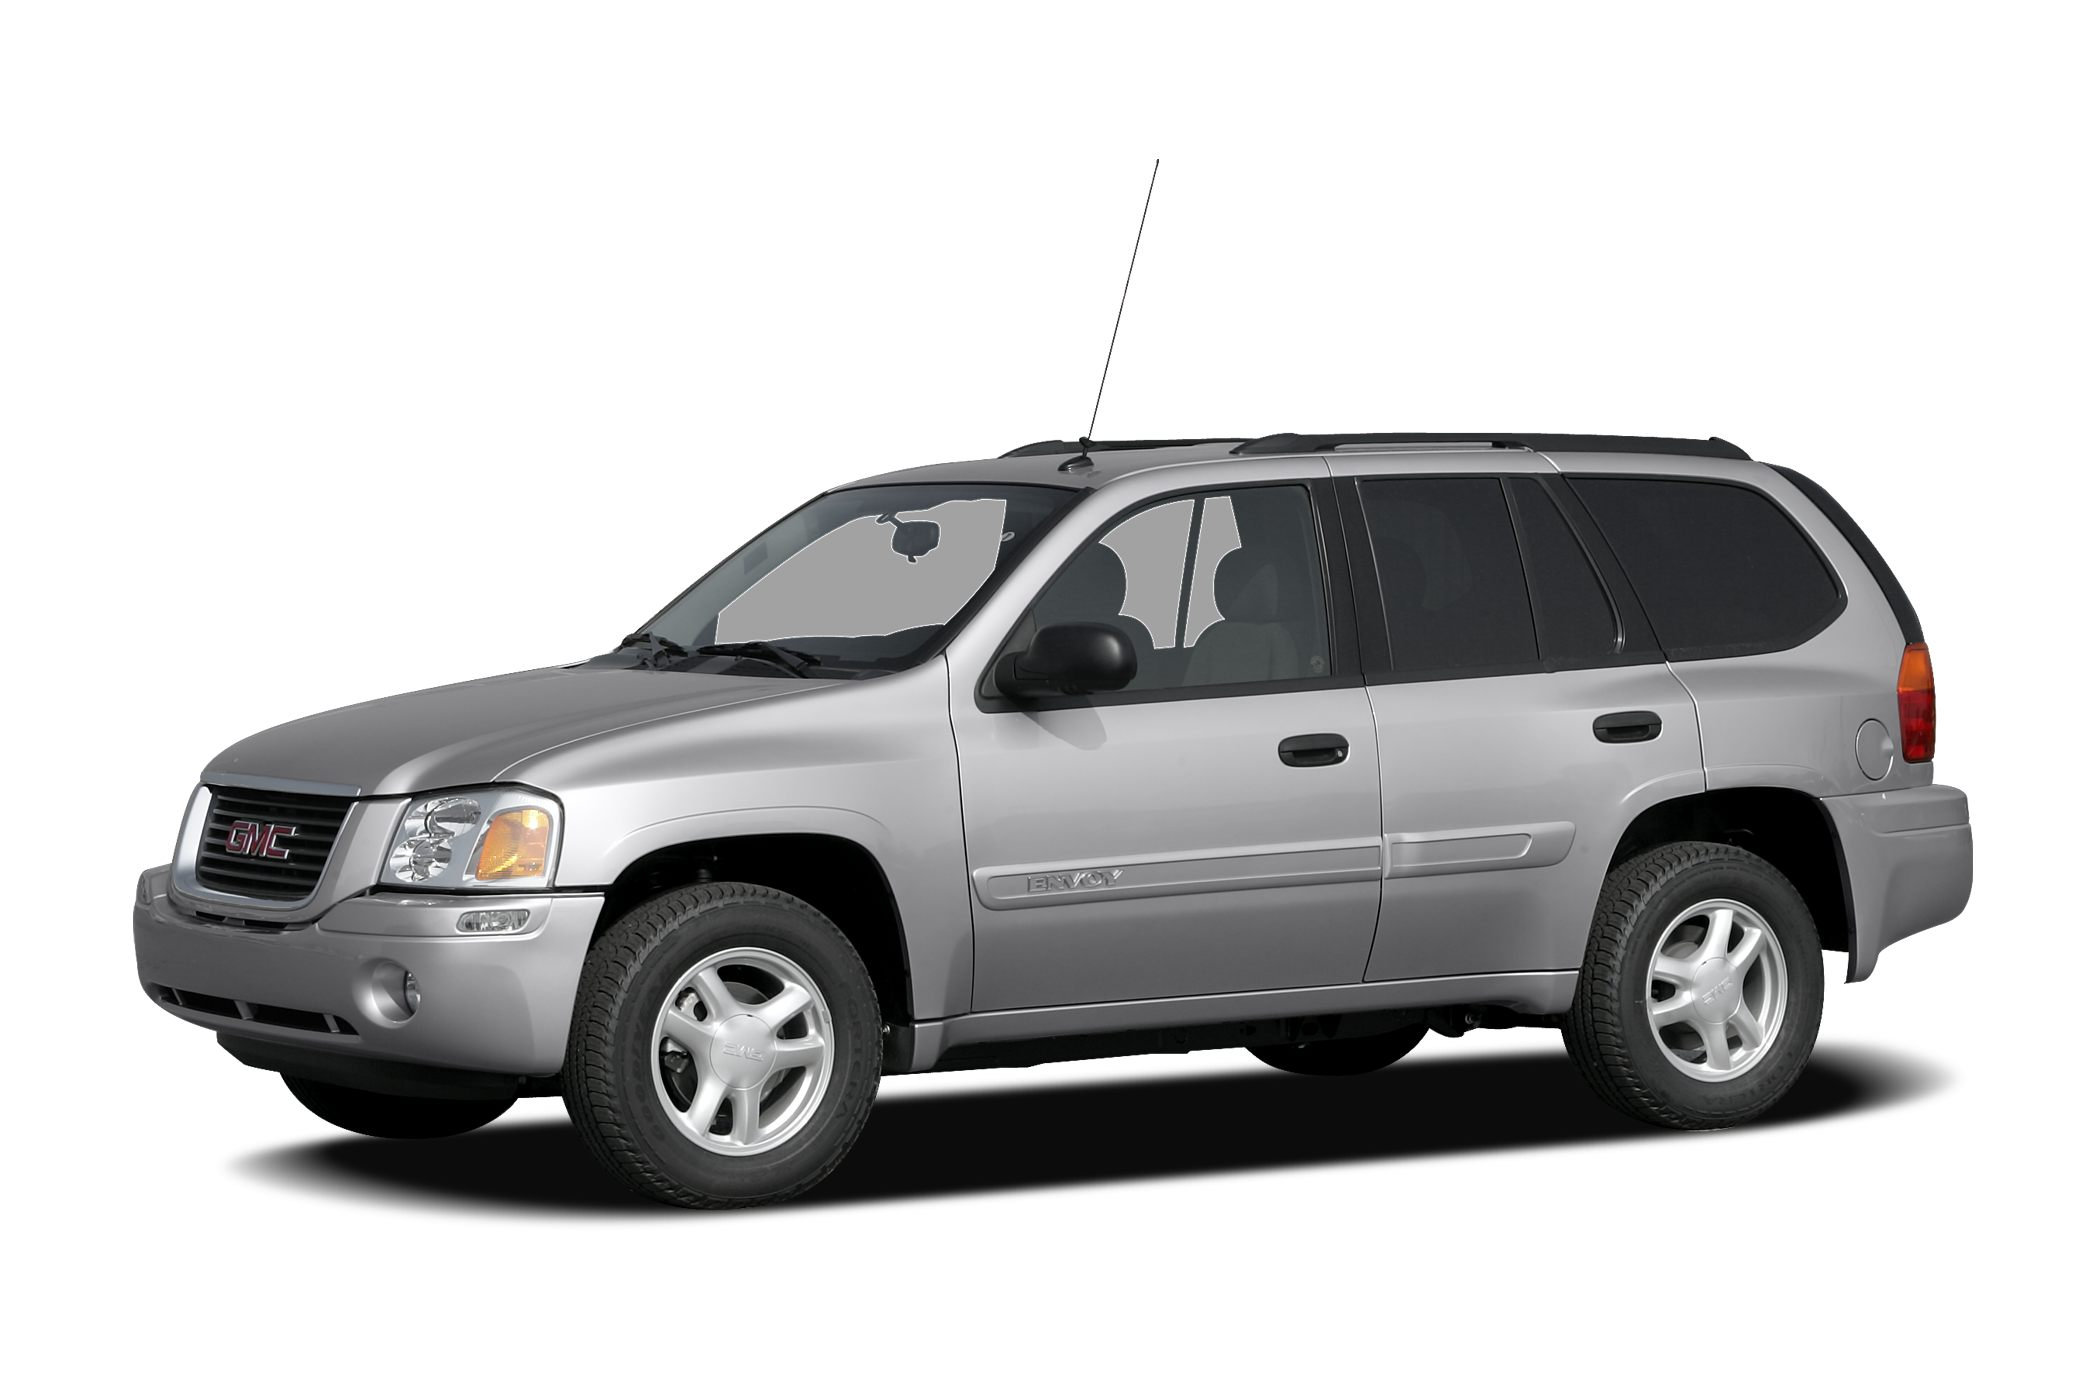 2008 GMC Envoy Denali SUV for sale in Tampa for $0 with 77,452 miles